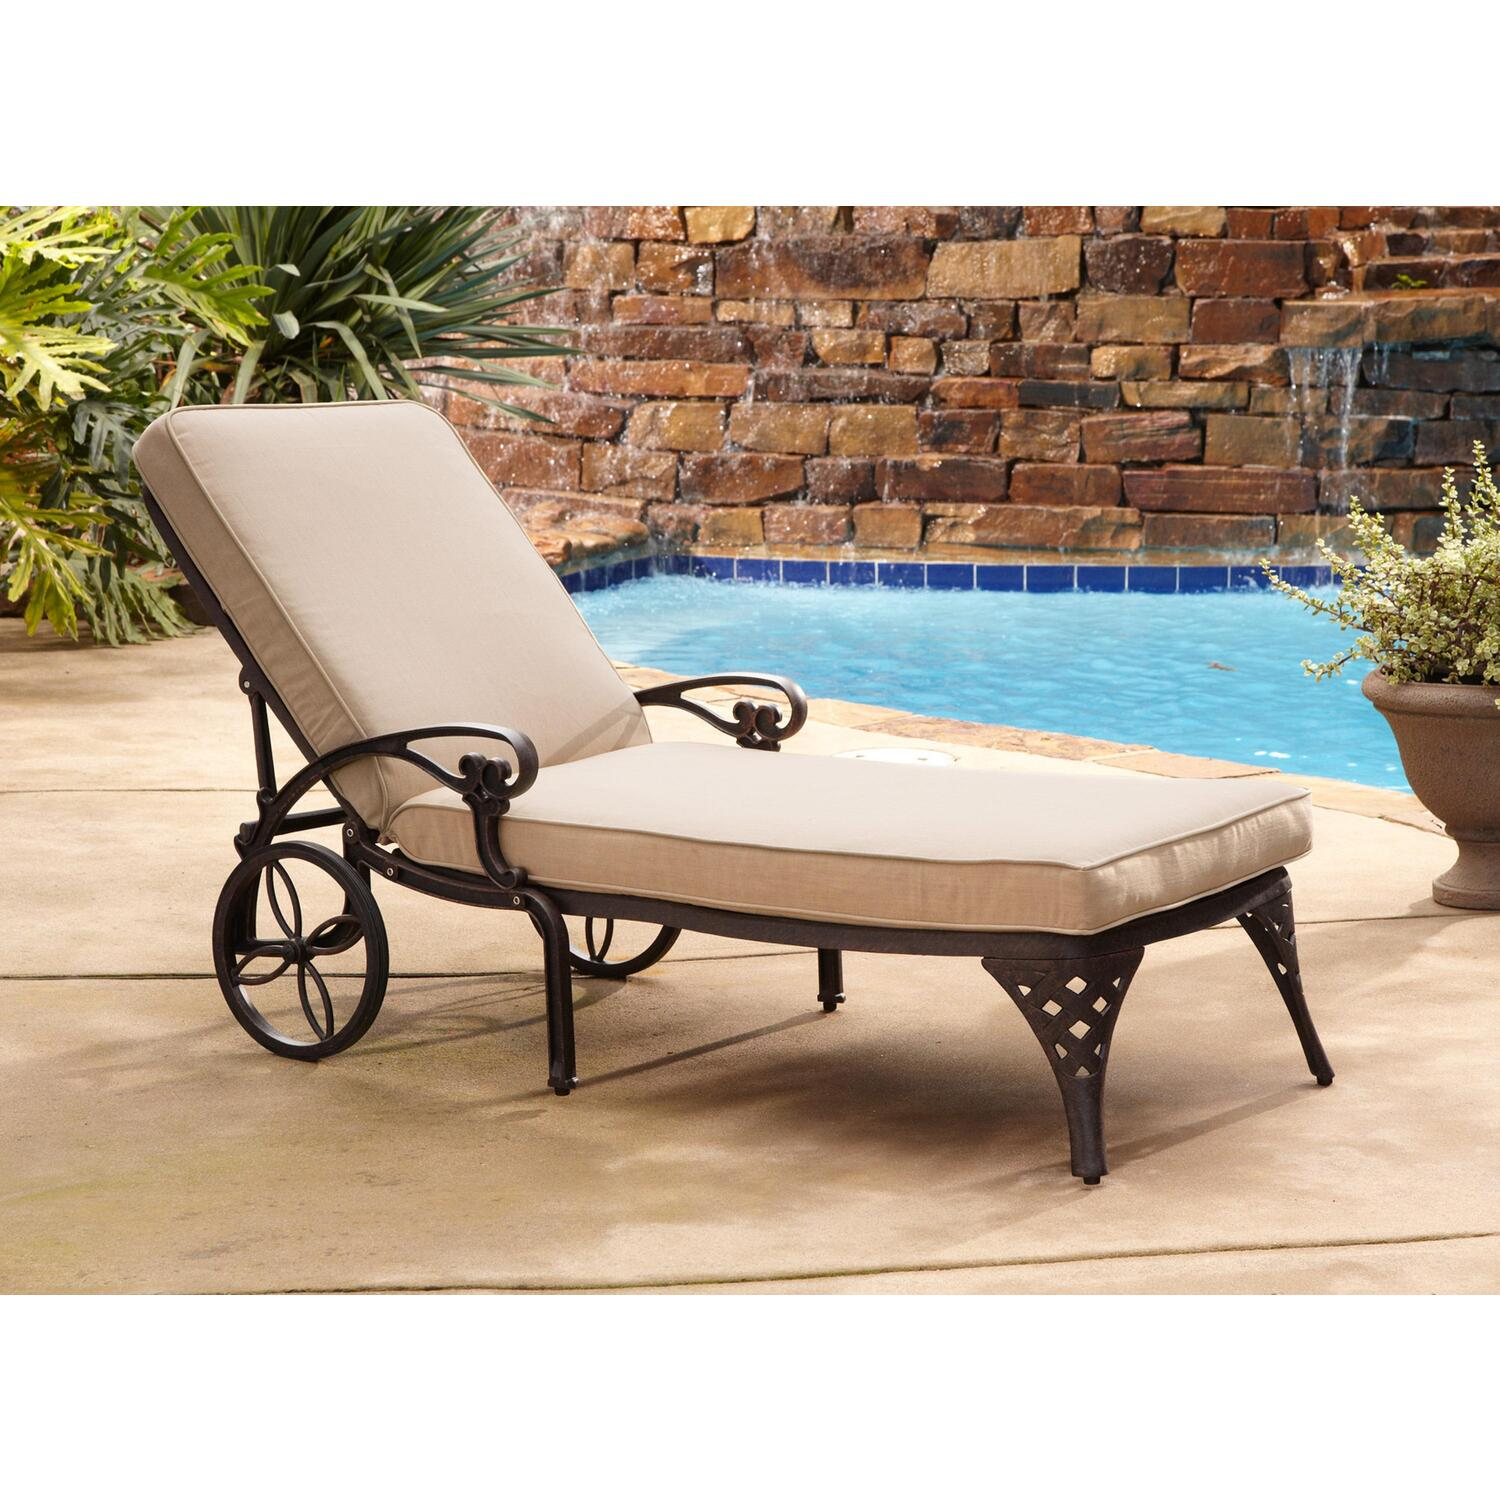 Pool Lounge Chairs Related Keywords & Suggestions - Pool Lounge Chairs ...